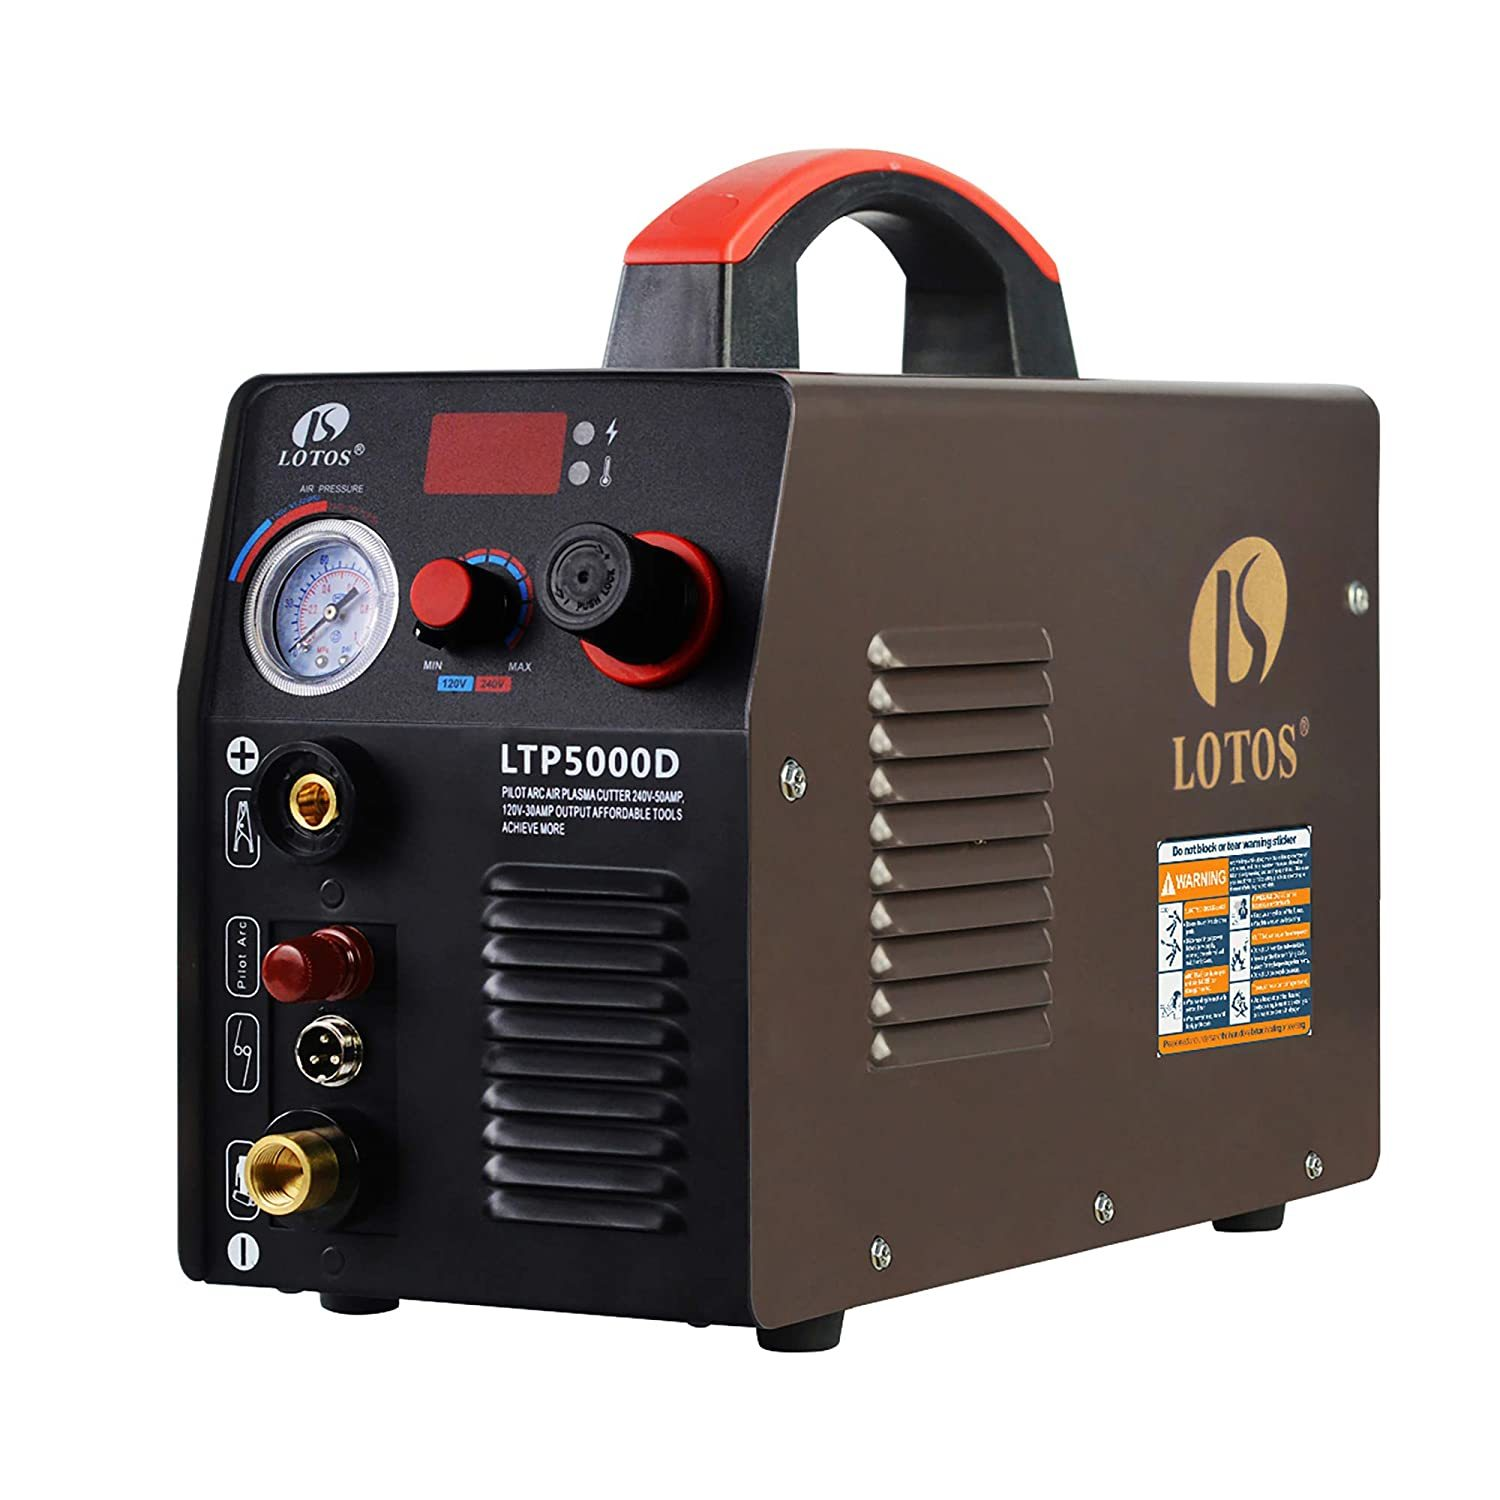 Lotos LTP5000D Multiprocess Welder